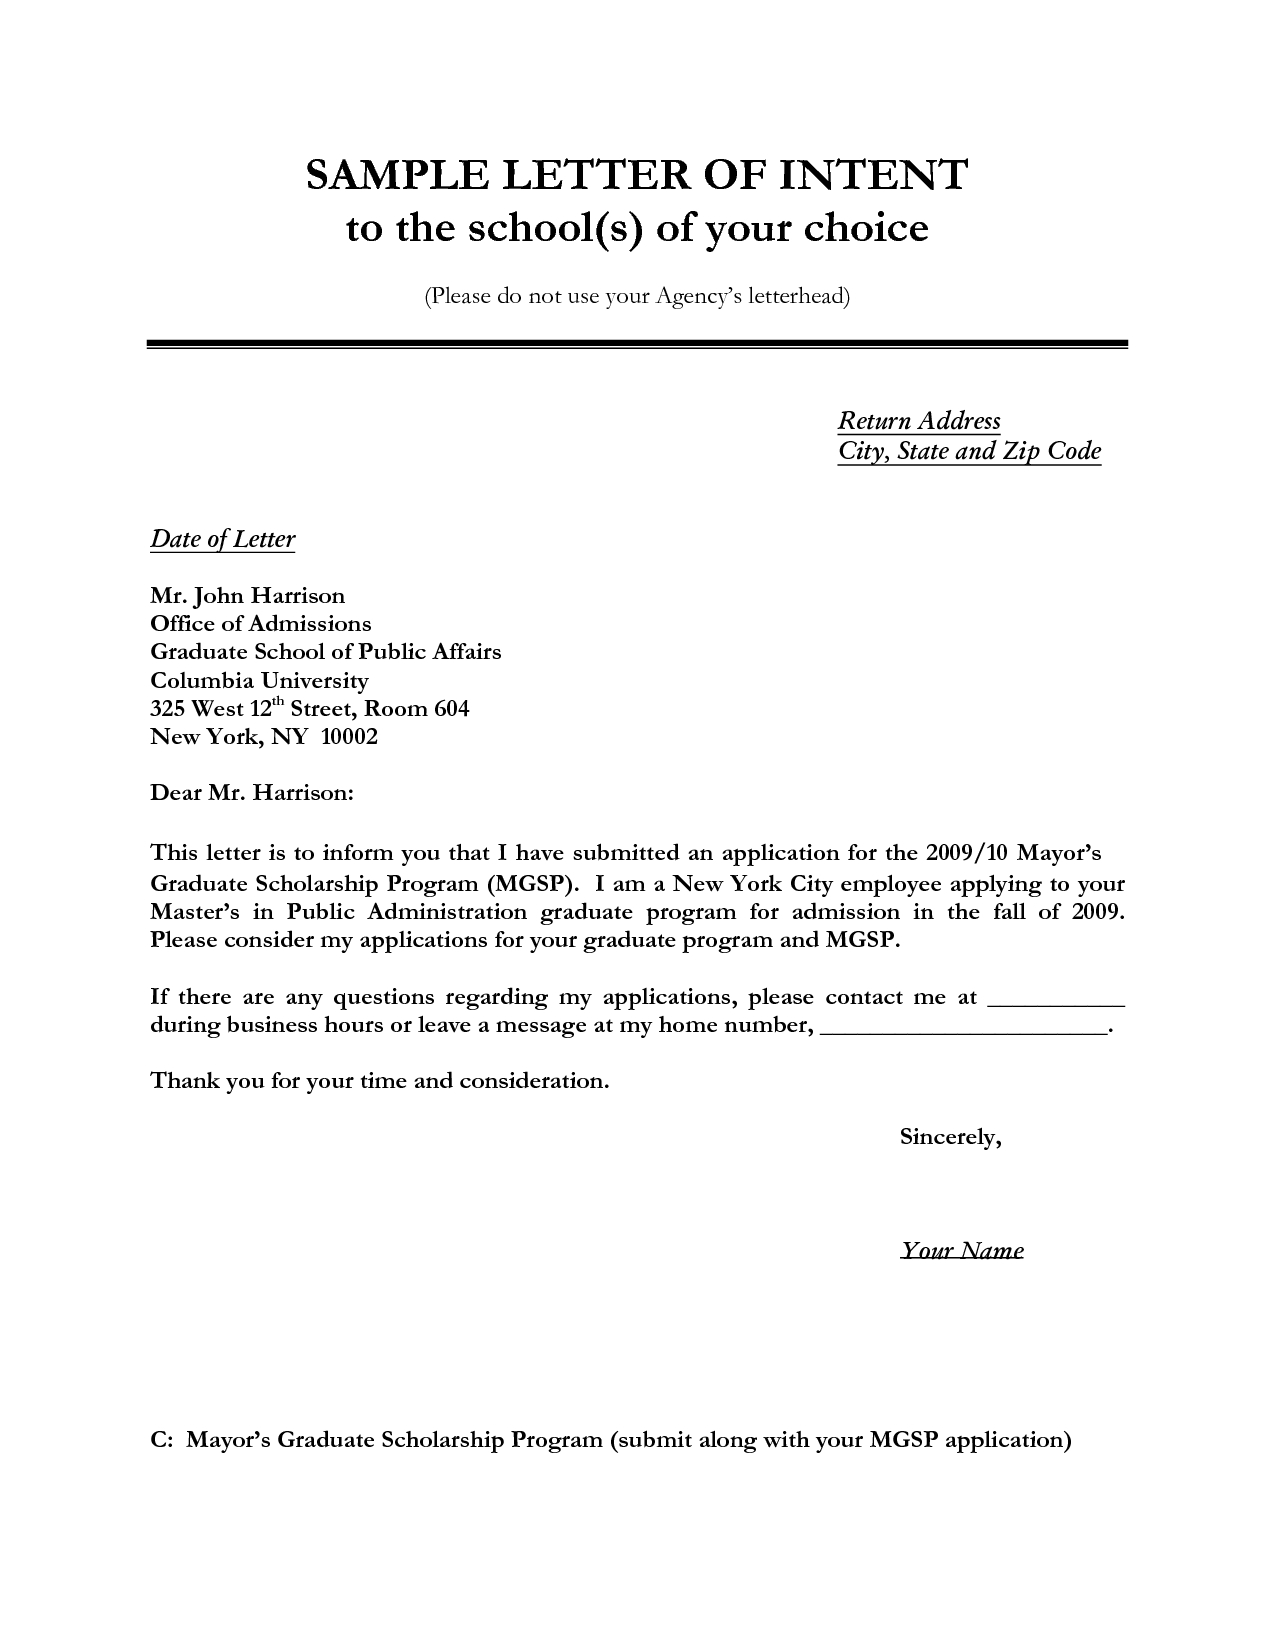 Letter Of Intent to Take Legal Action Template - Letter Of Intent Sample